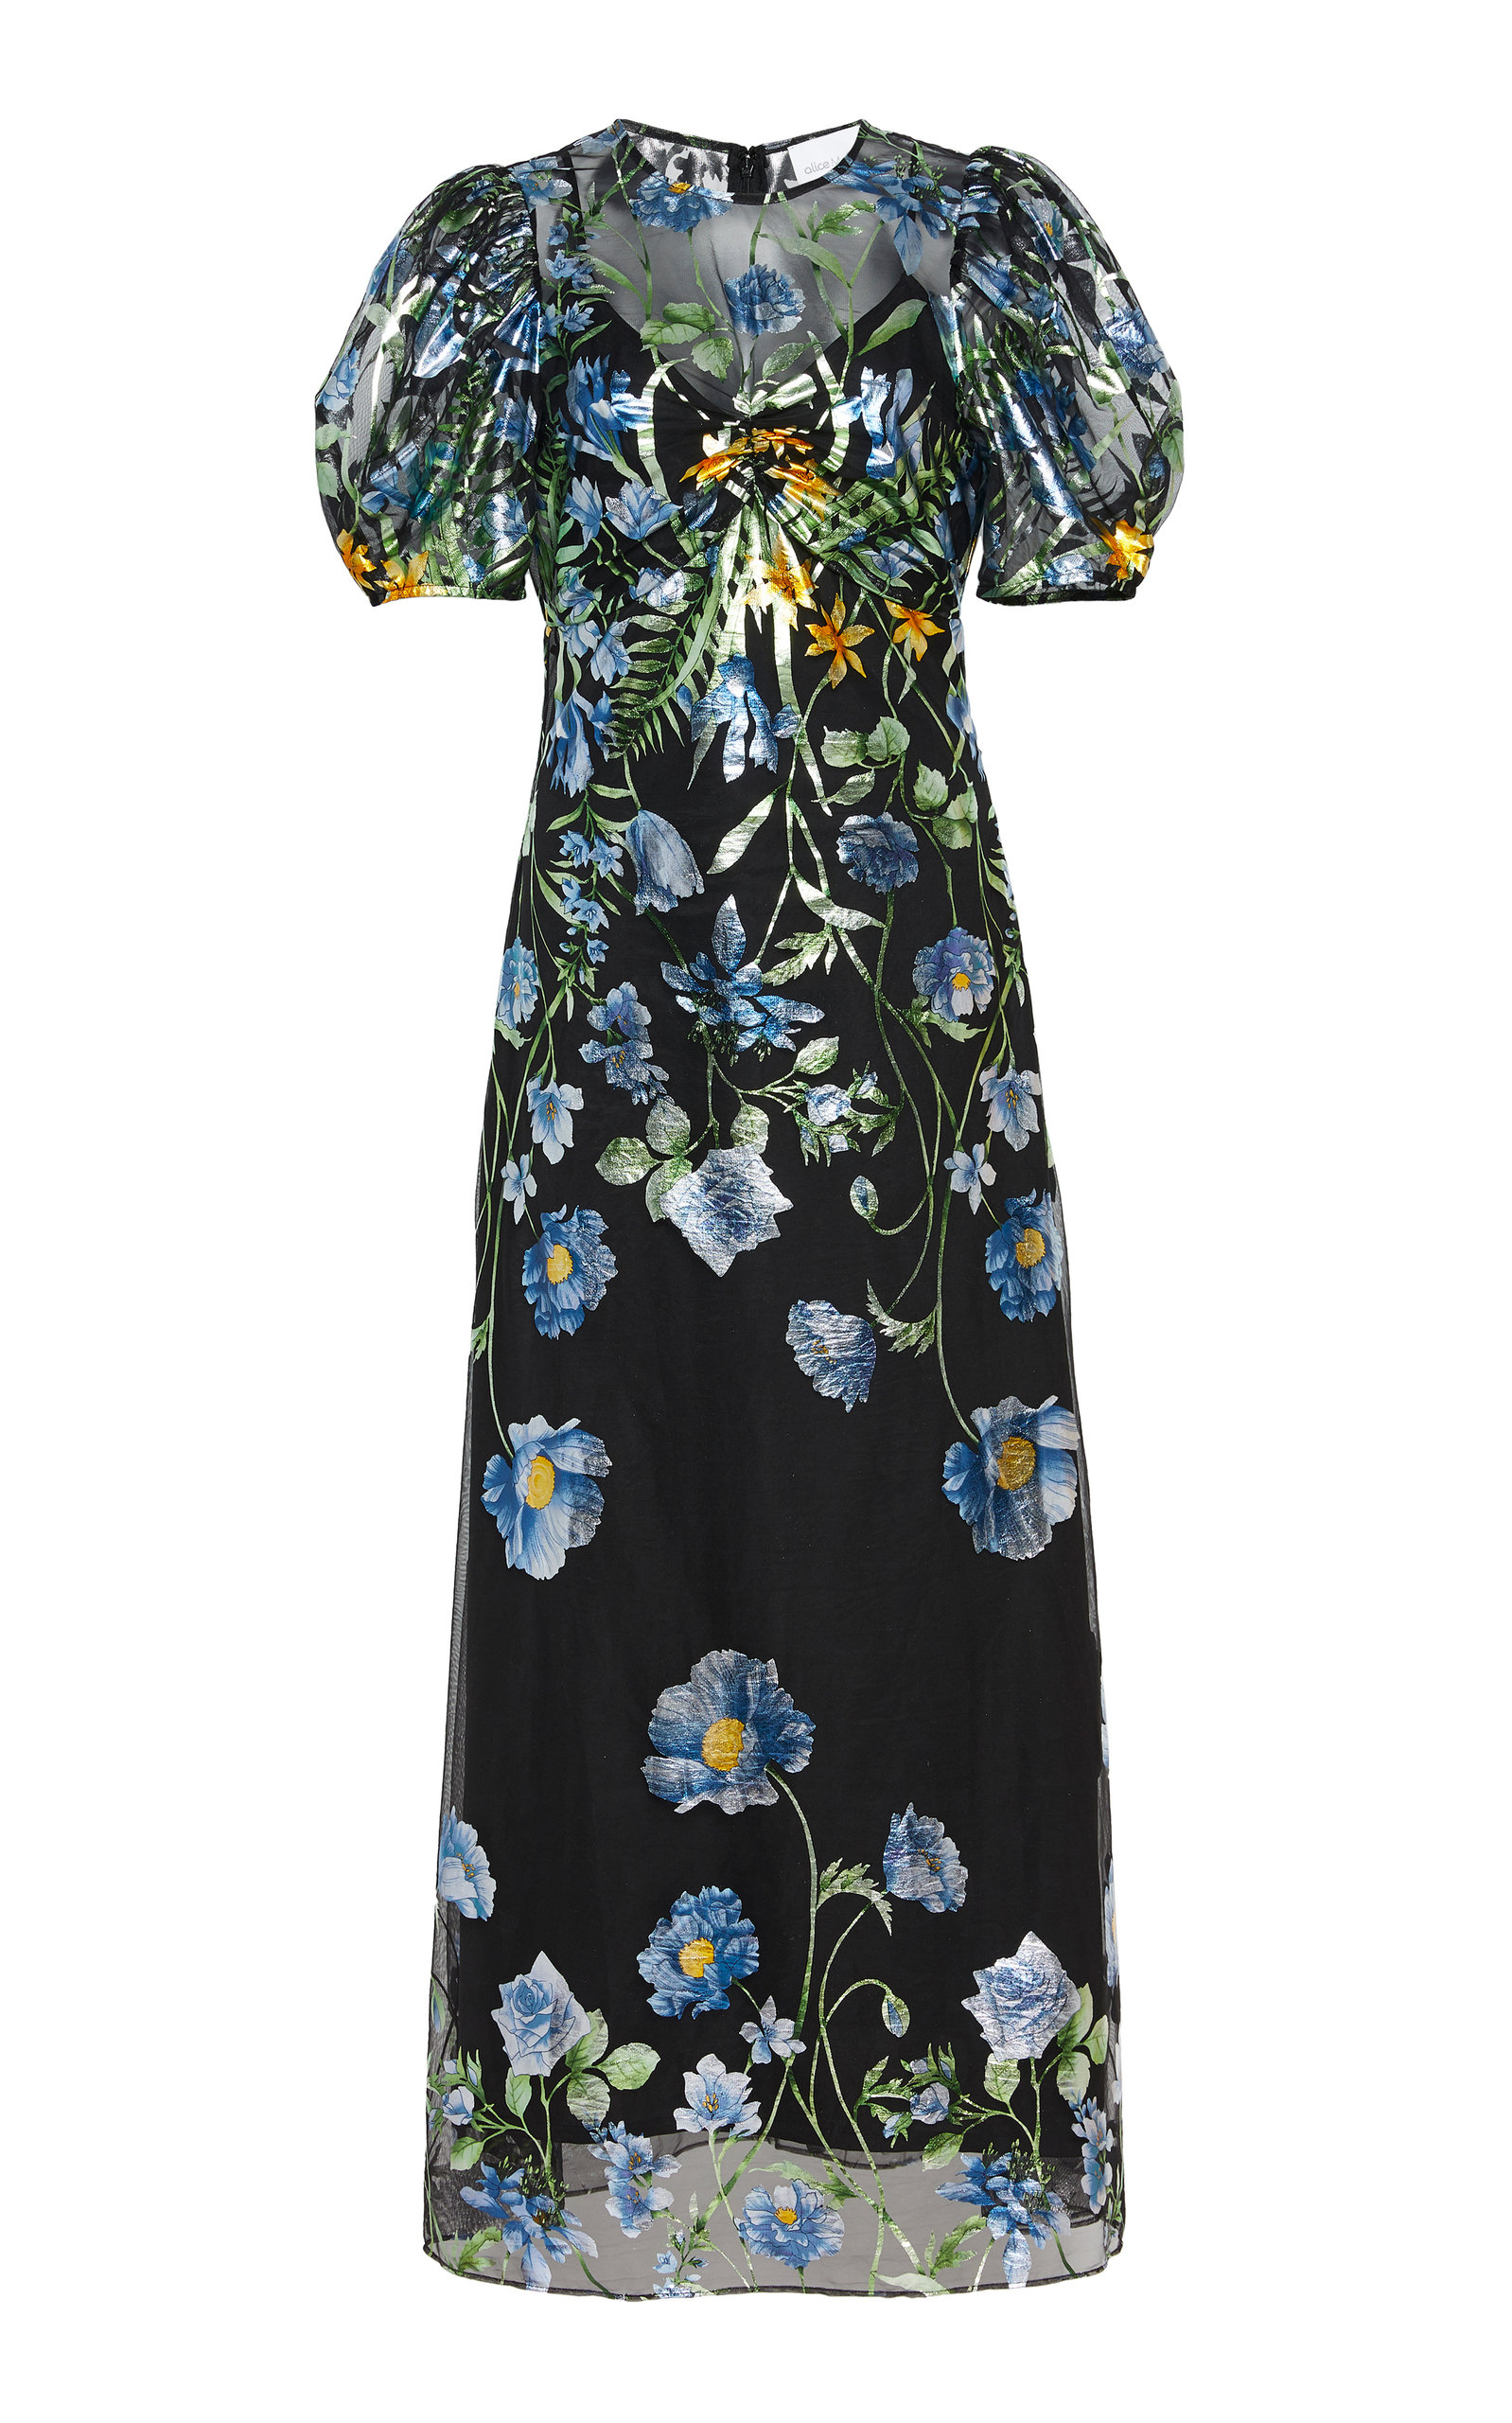 Alice Mccall SOME KIND OF BEAUTIFUL MIDI DRESS